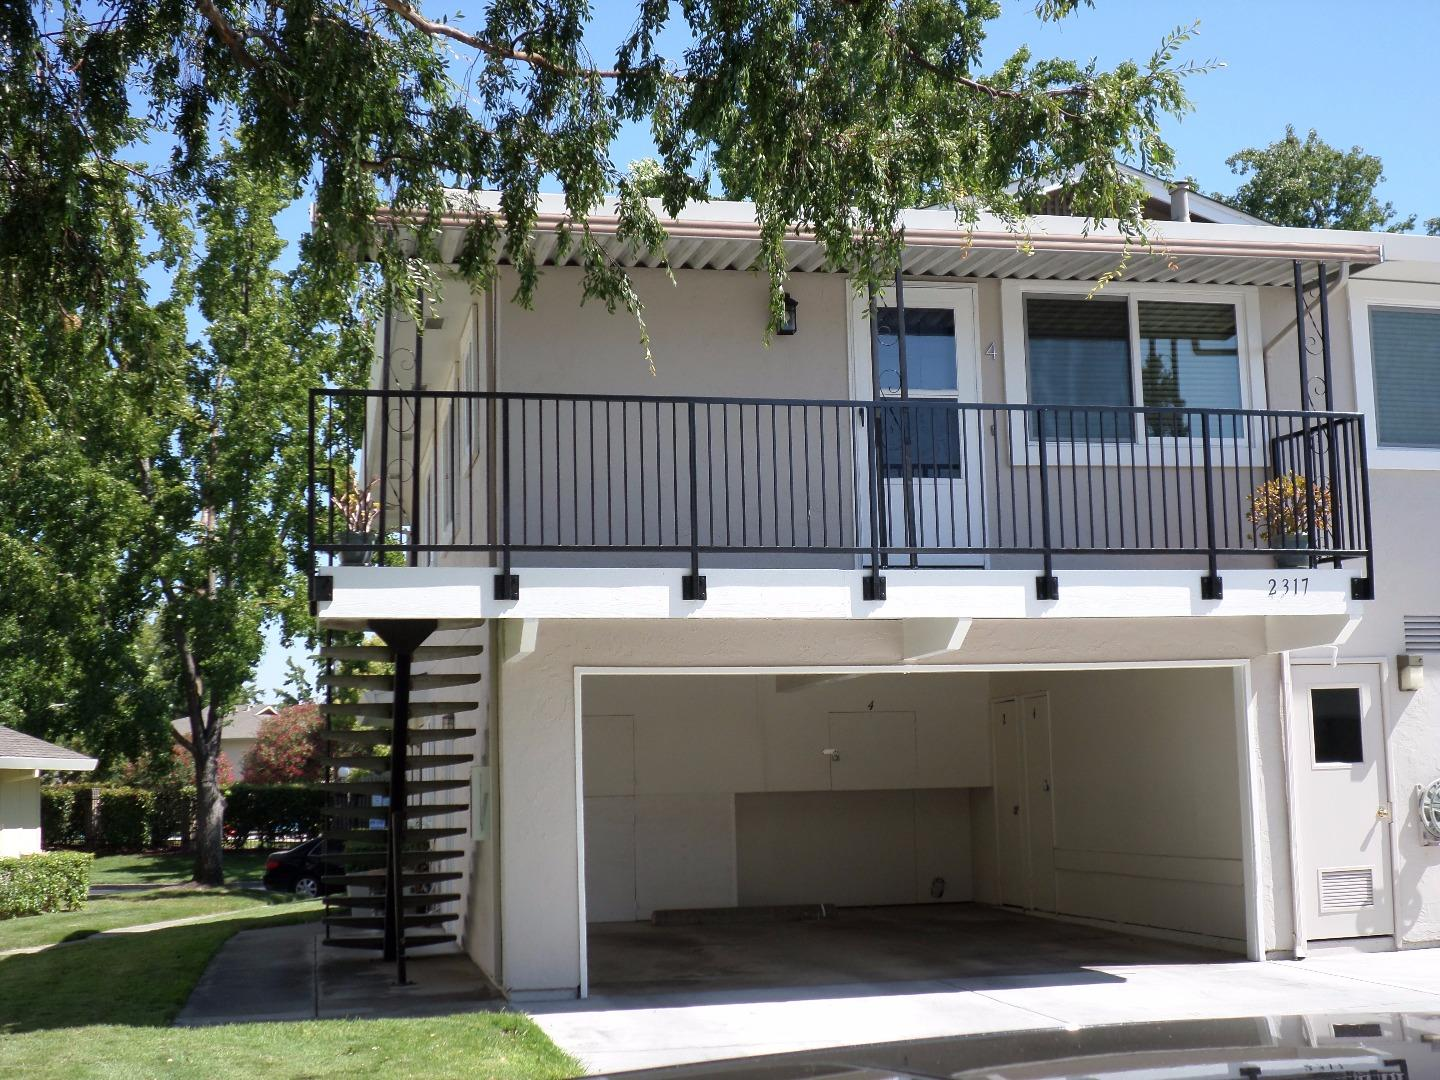 Additional photo for property listing at 2317 Saidel Drive  San Jose, California 95124 Estados Unidos